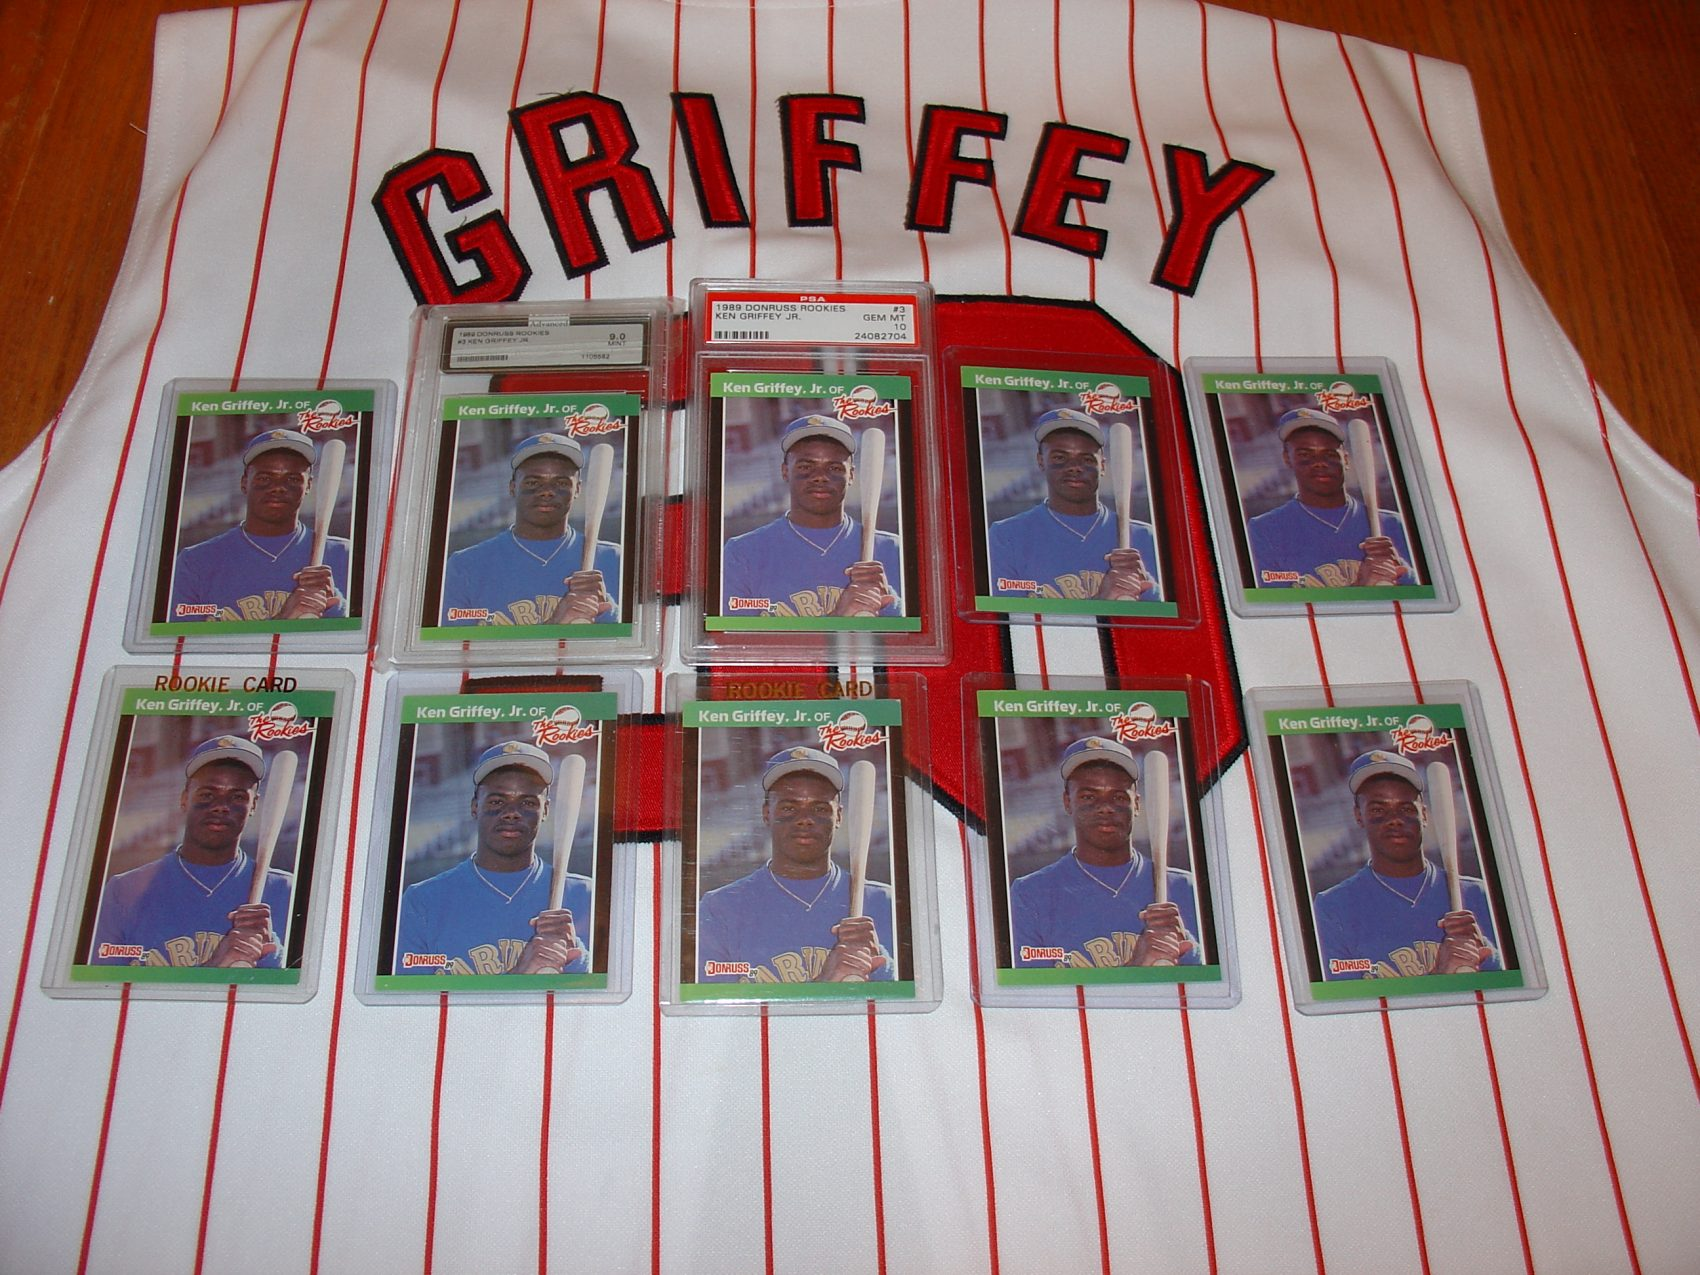 A Ken Griffey Jr Card Collection Fit For The Hall Of Fame